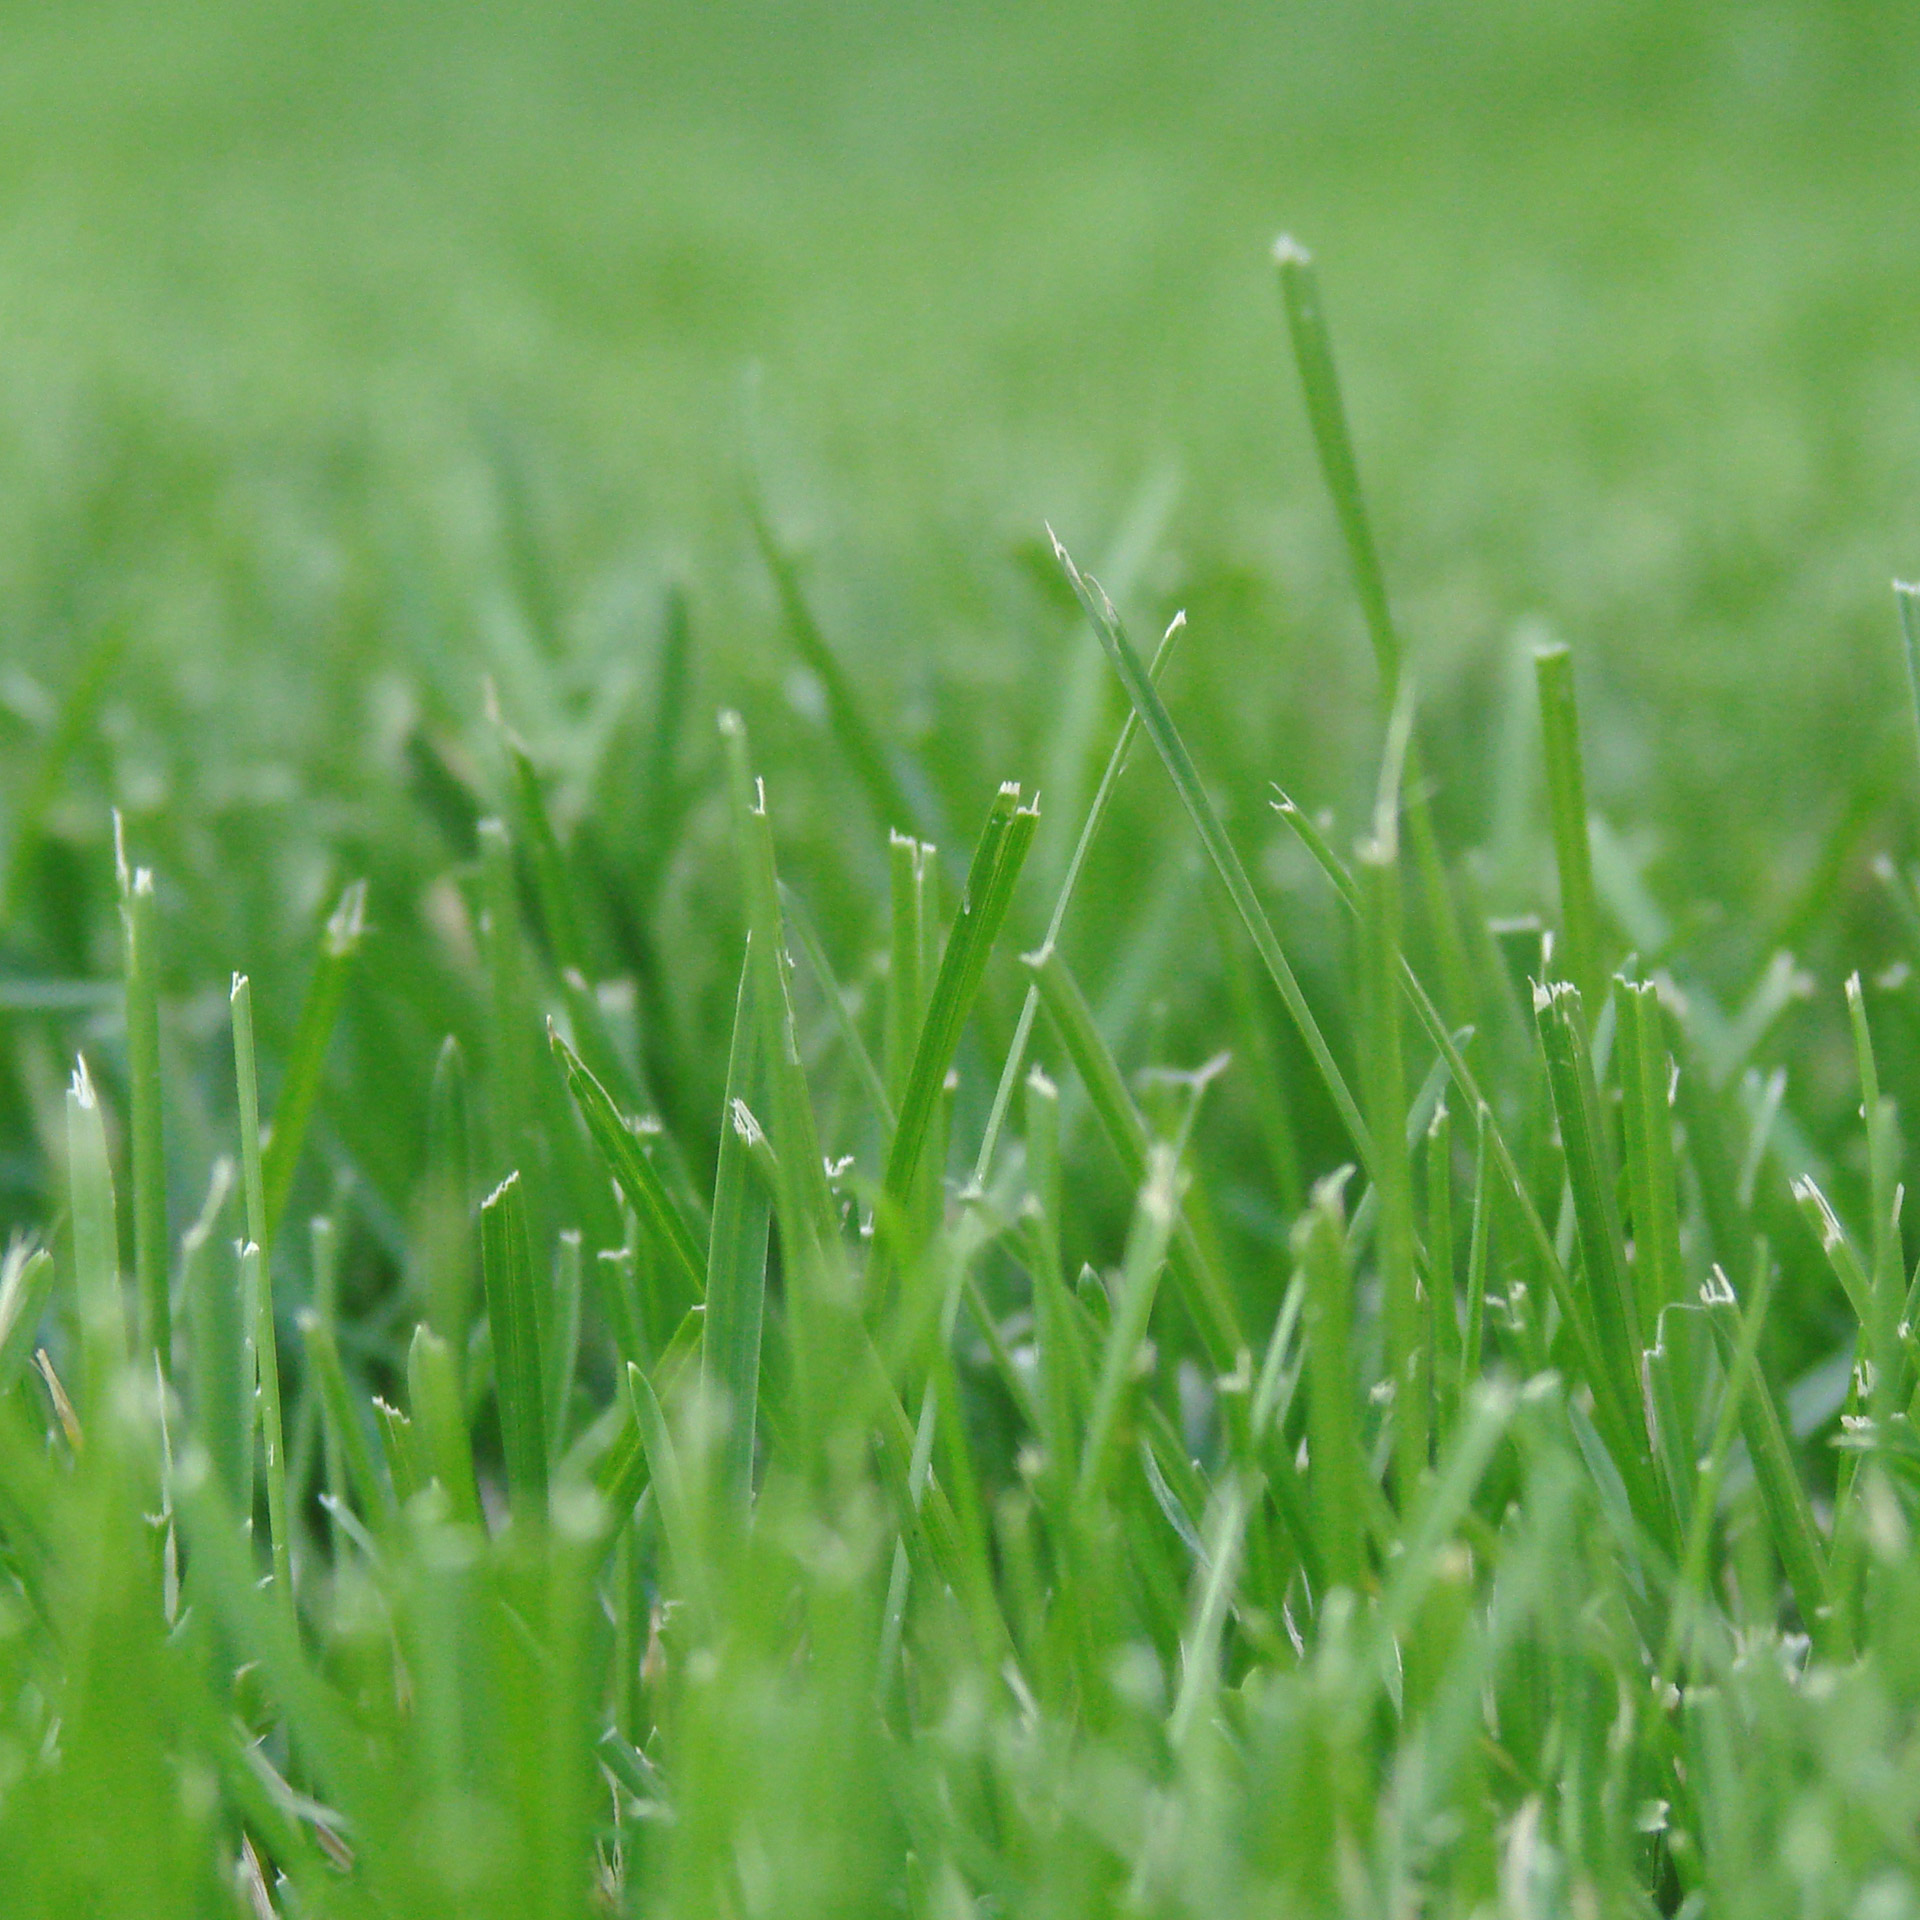 Image of healthy green grass